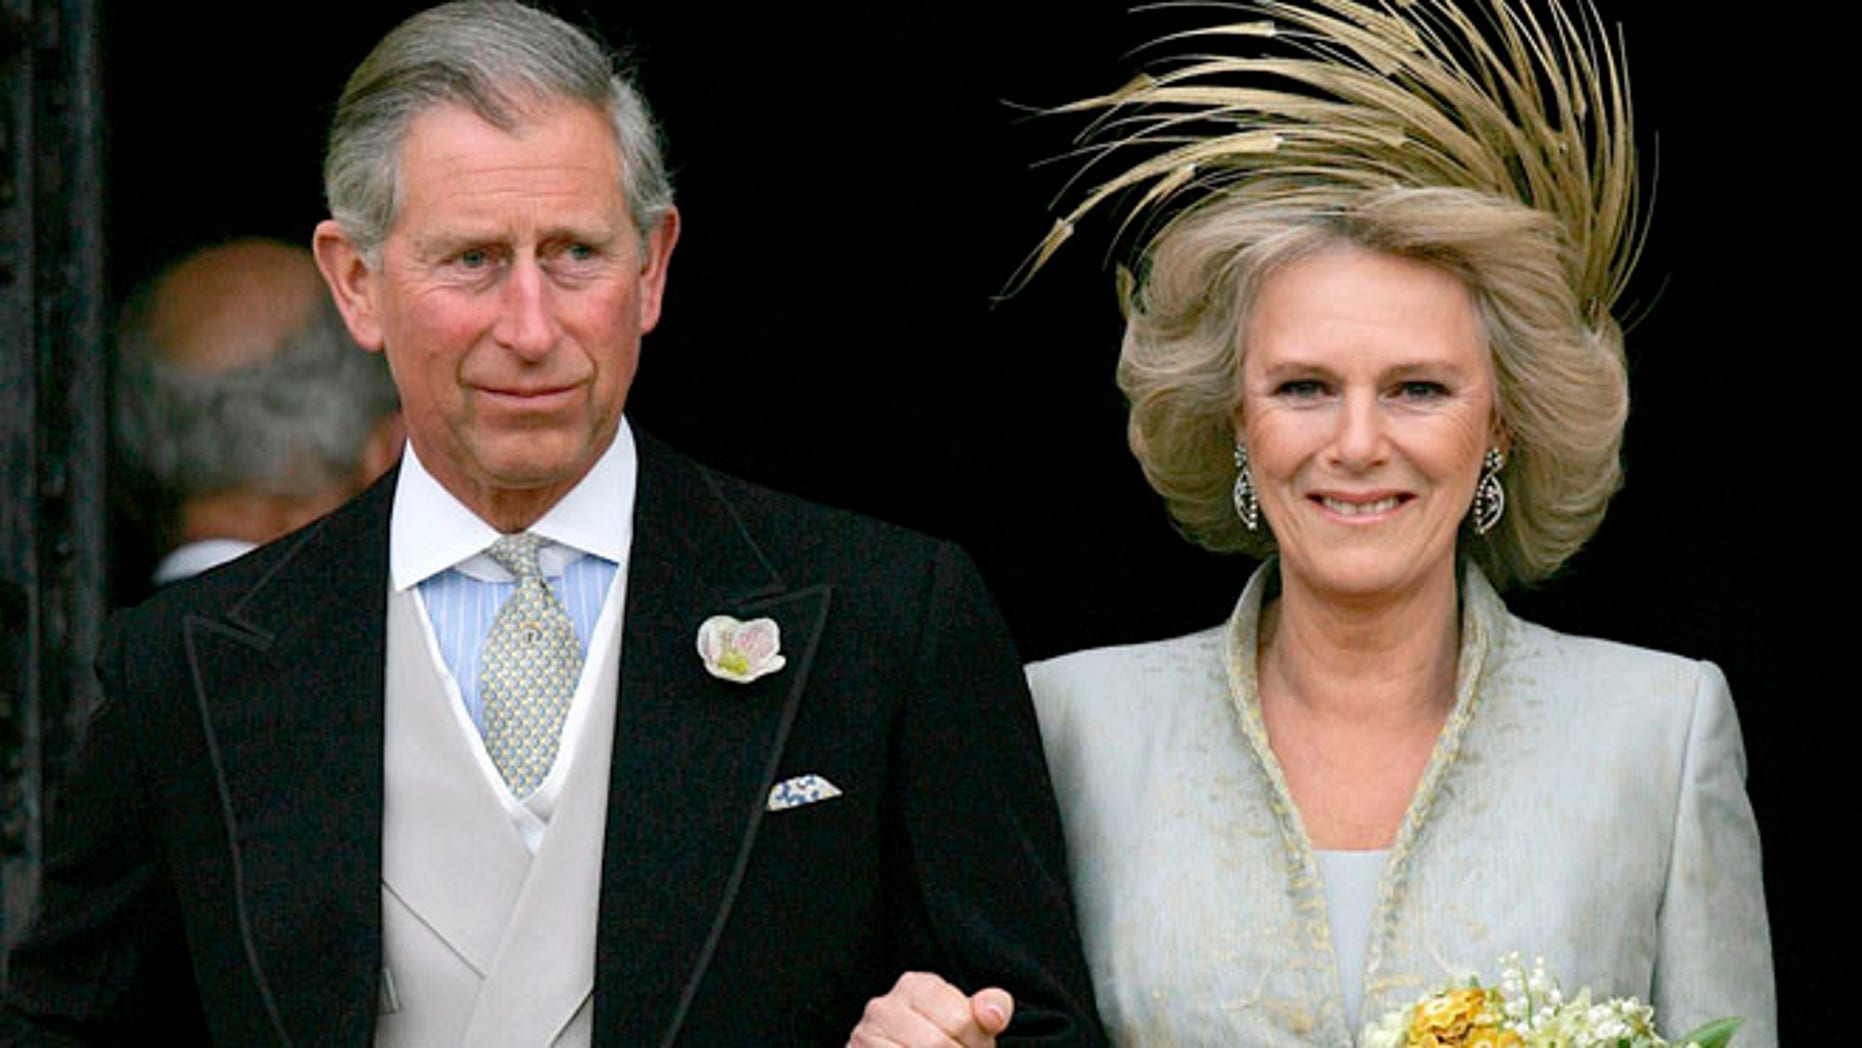 April 9, 2005 Prince Charles and his bride Camilla  Duchess of Cornwall as they leave St George's Chapel in Windsor, England following the church blessing of their civil wedding ceremony.